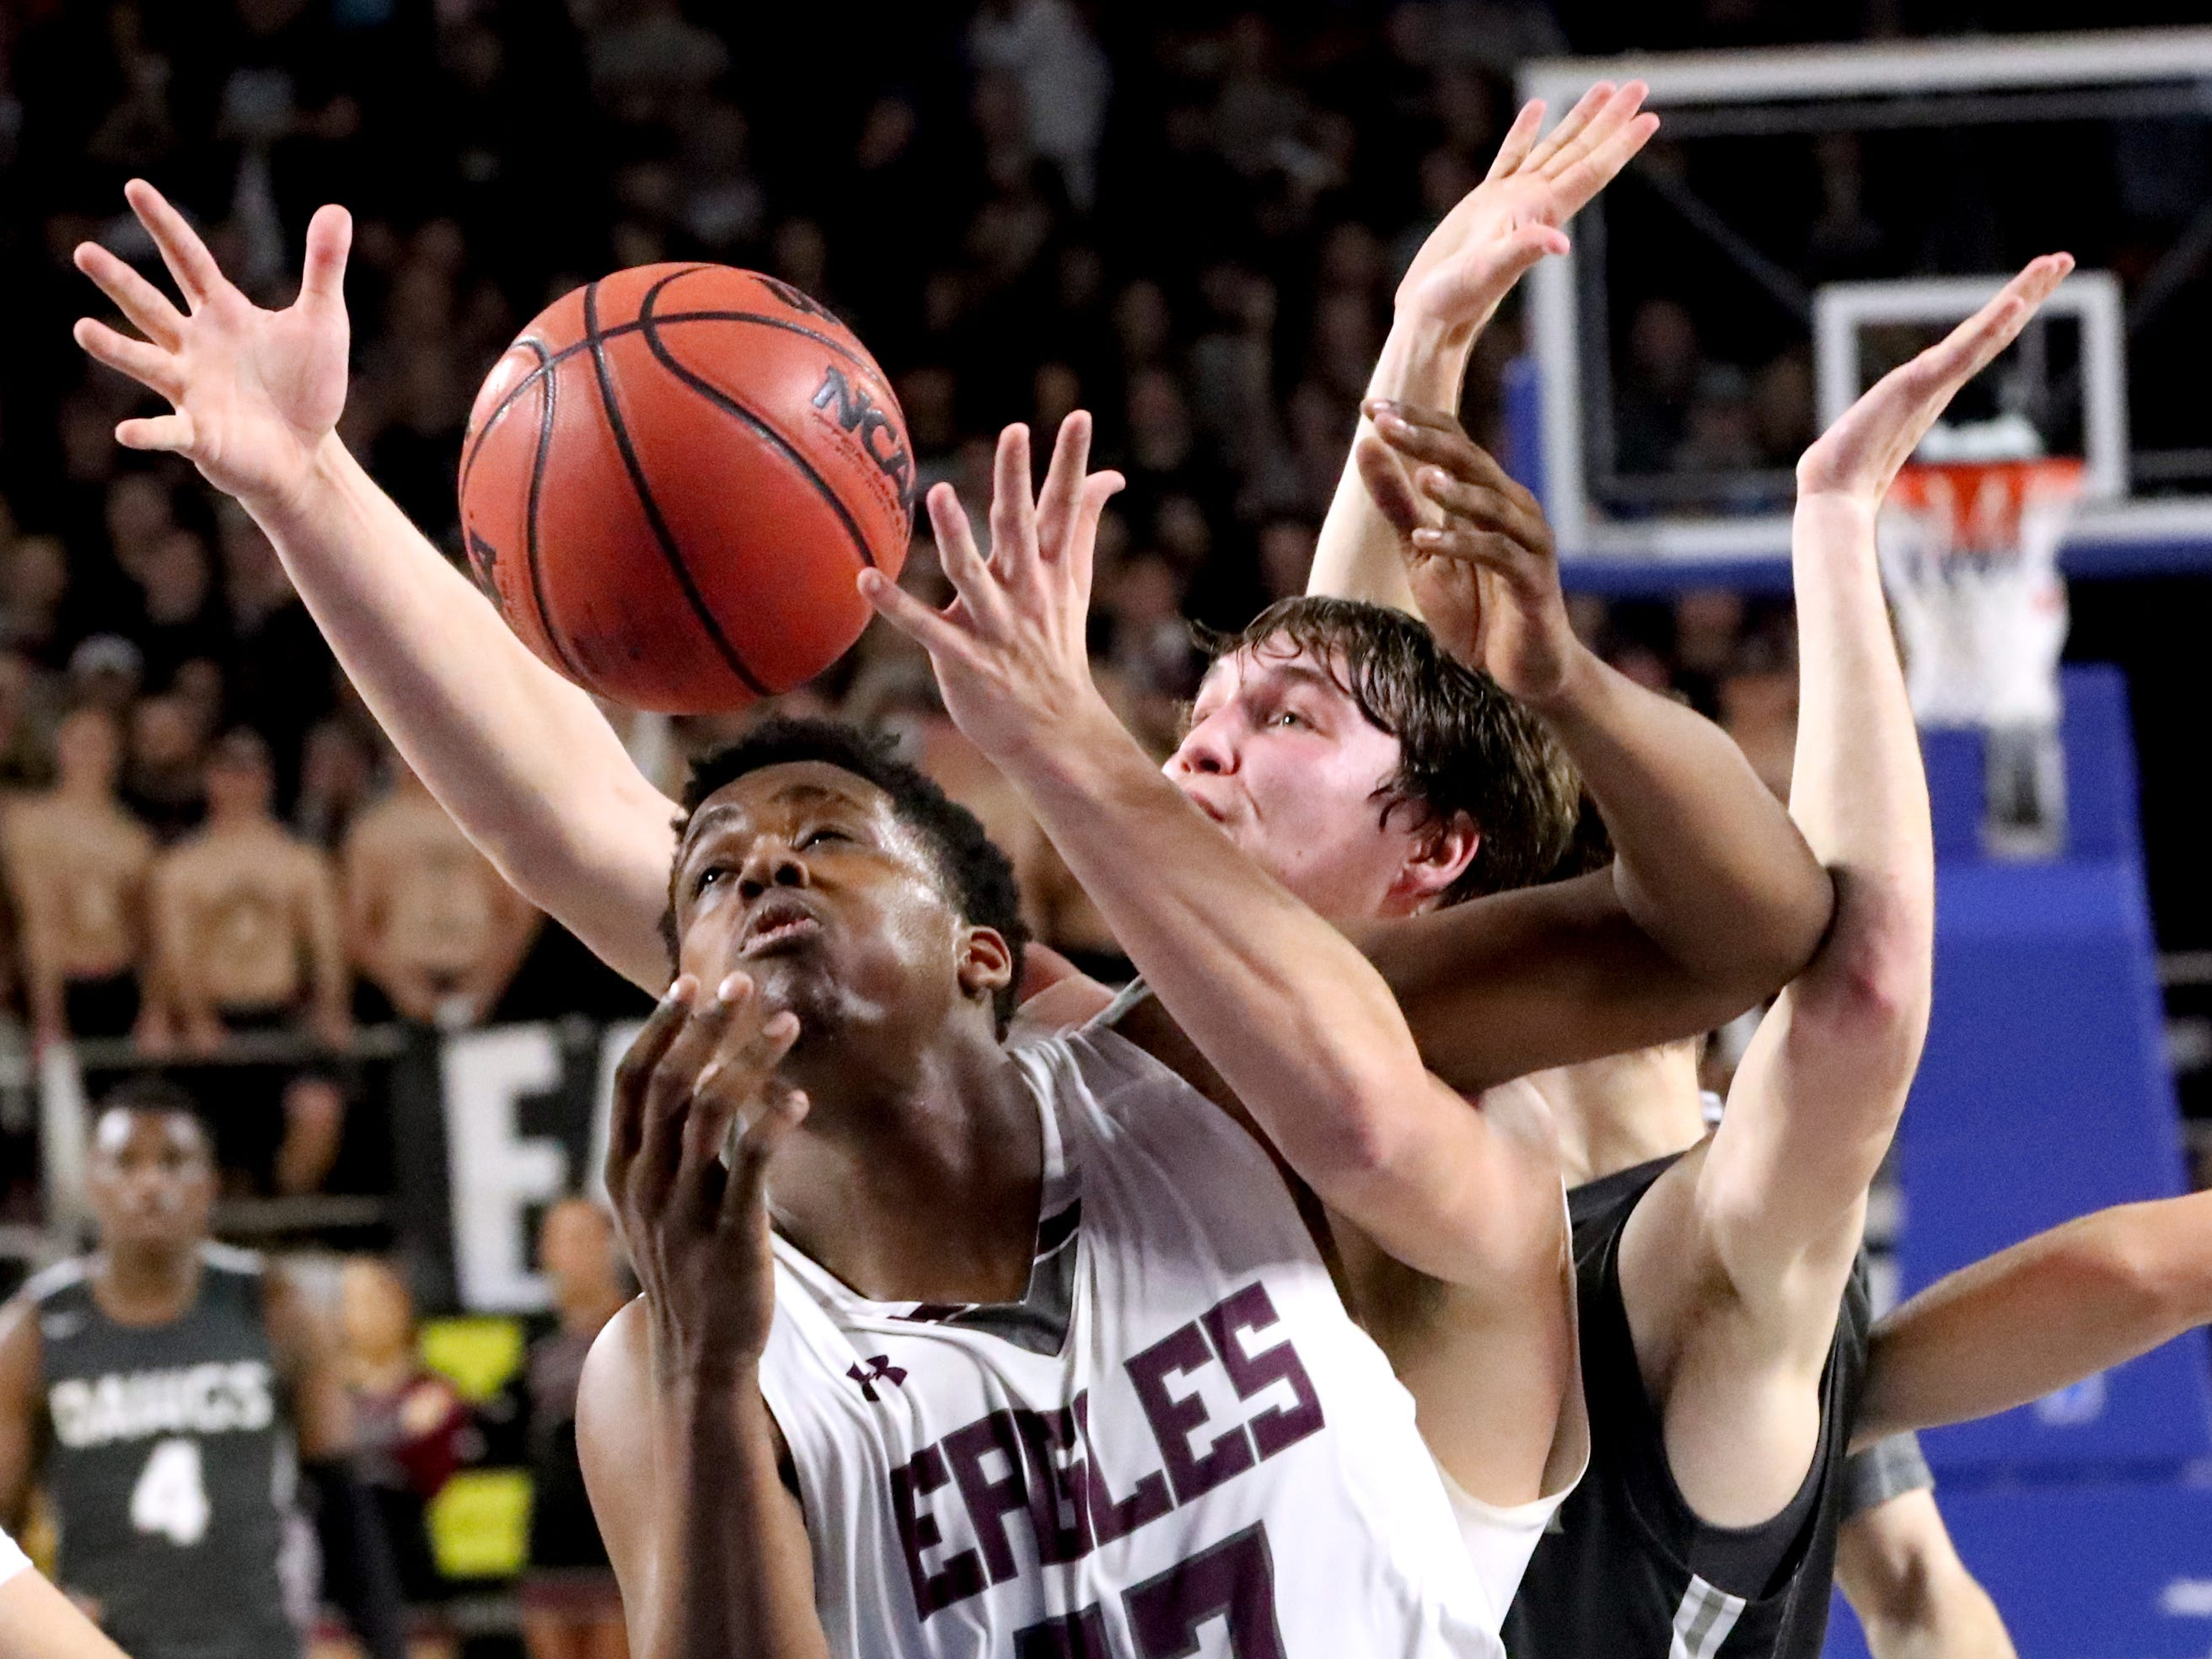 Eagleville's Demarious Stoudemire (33) and Eagleville's Ethan Cobb (12) both go after a rebound after a free throw during the semifinal round of the TSSAA Class A Boys State Tournament against Columbia Academy, on Thursday, March 15, 2019, at Murphy Center in Murfreesboro, Tenn.